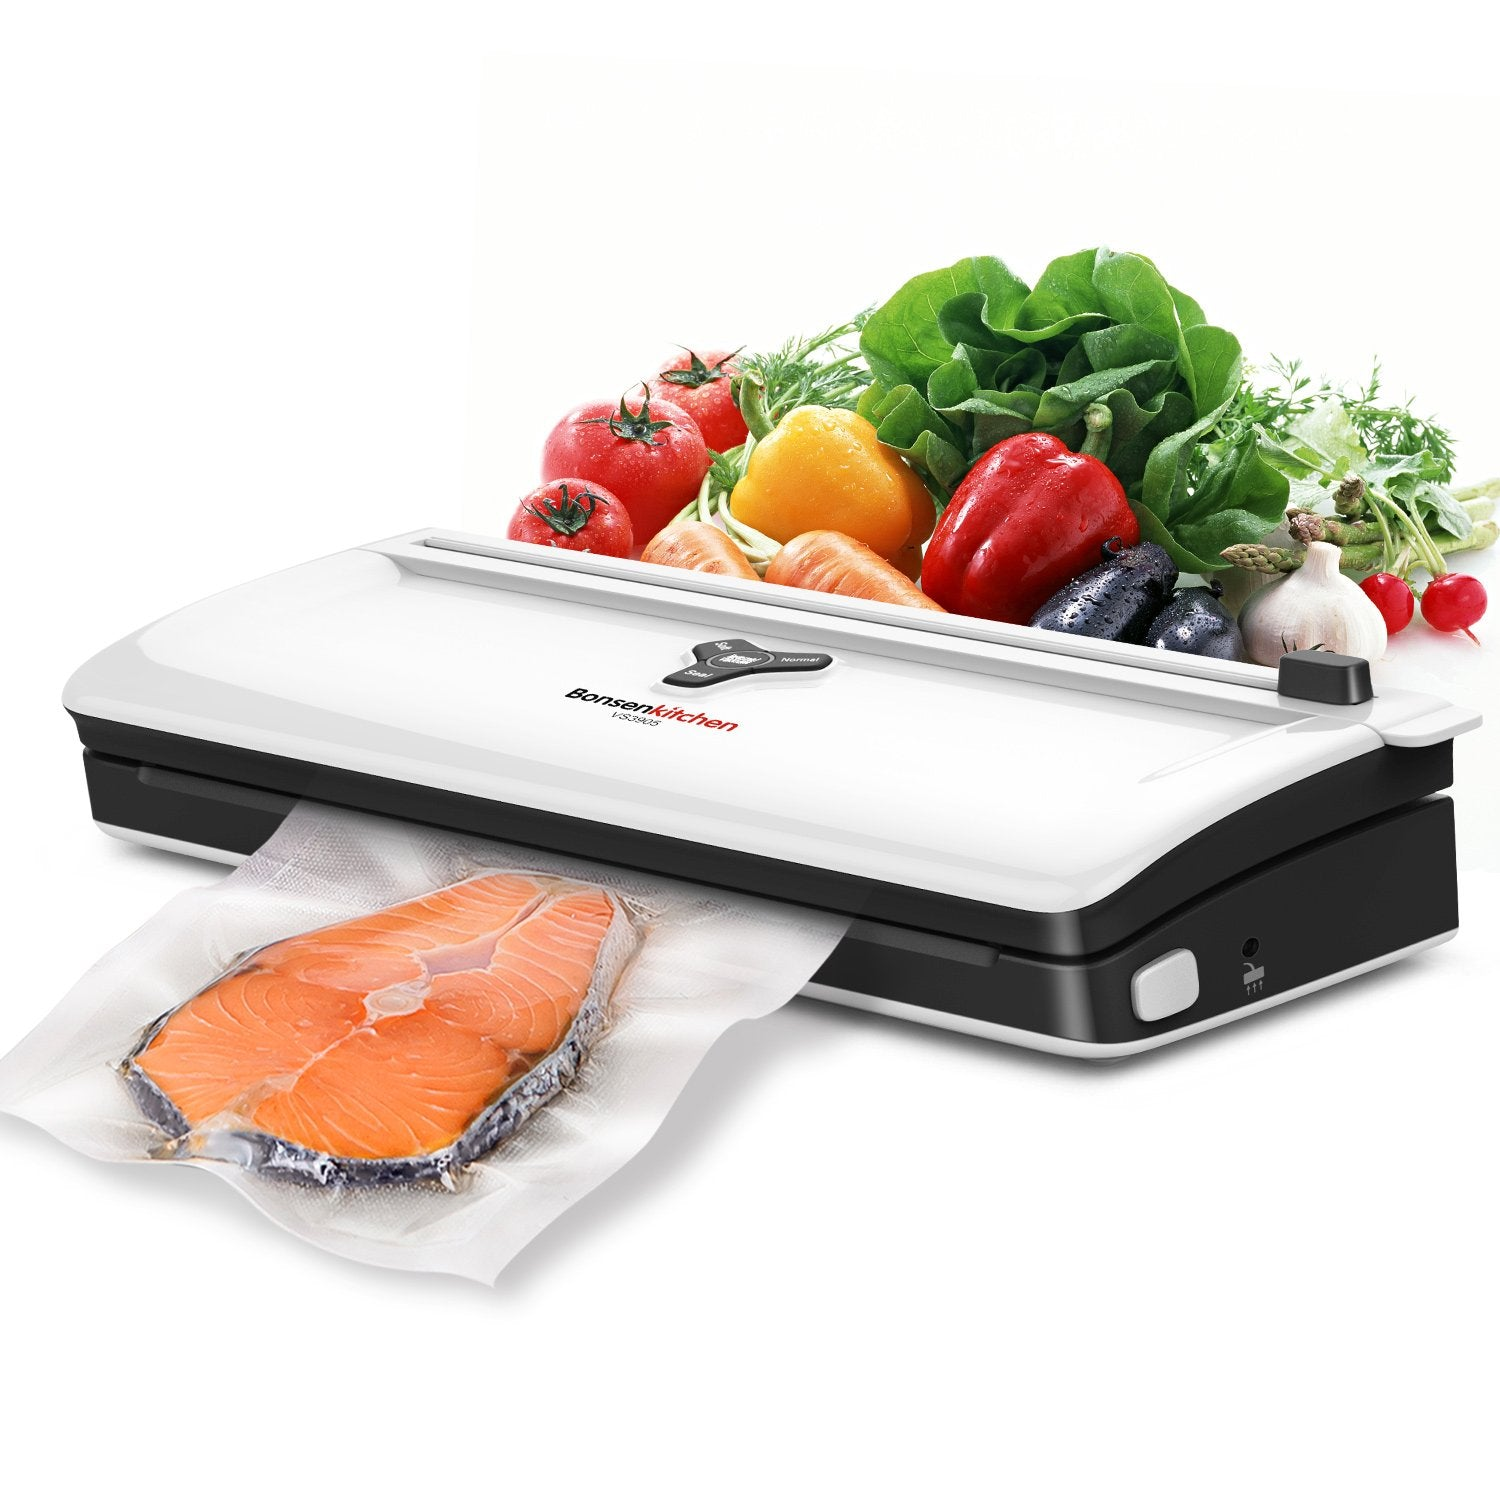 Bonsenkitchen Vacuum Sealer VS3905